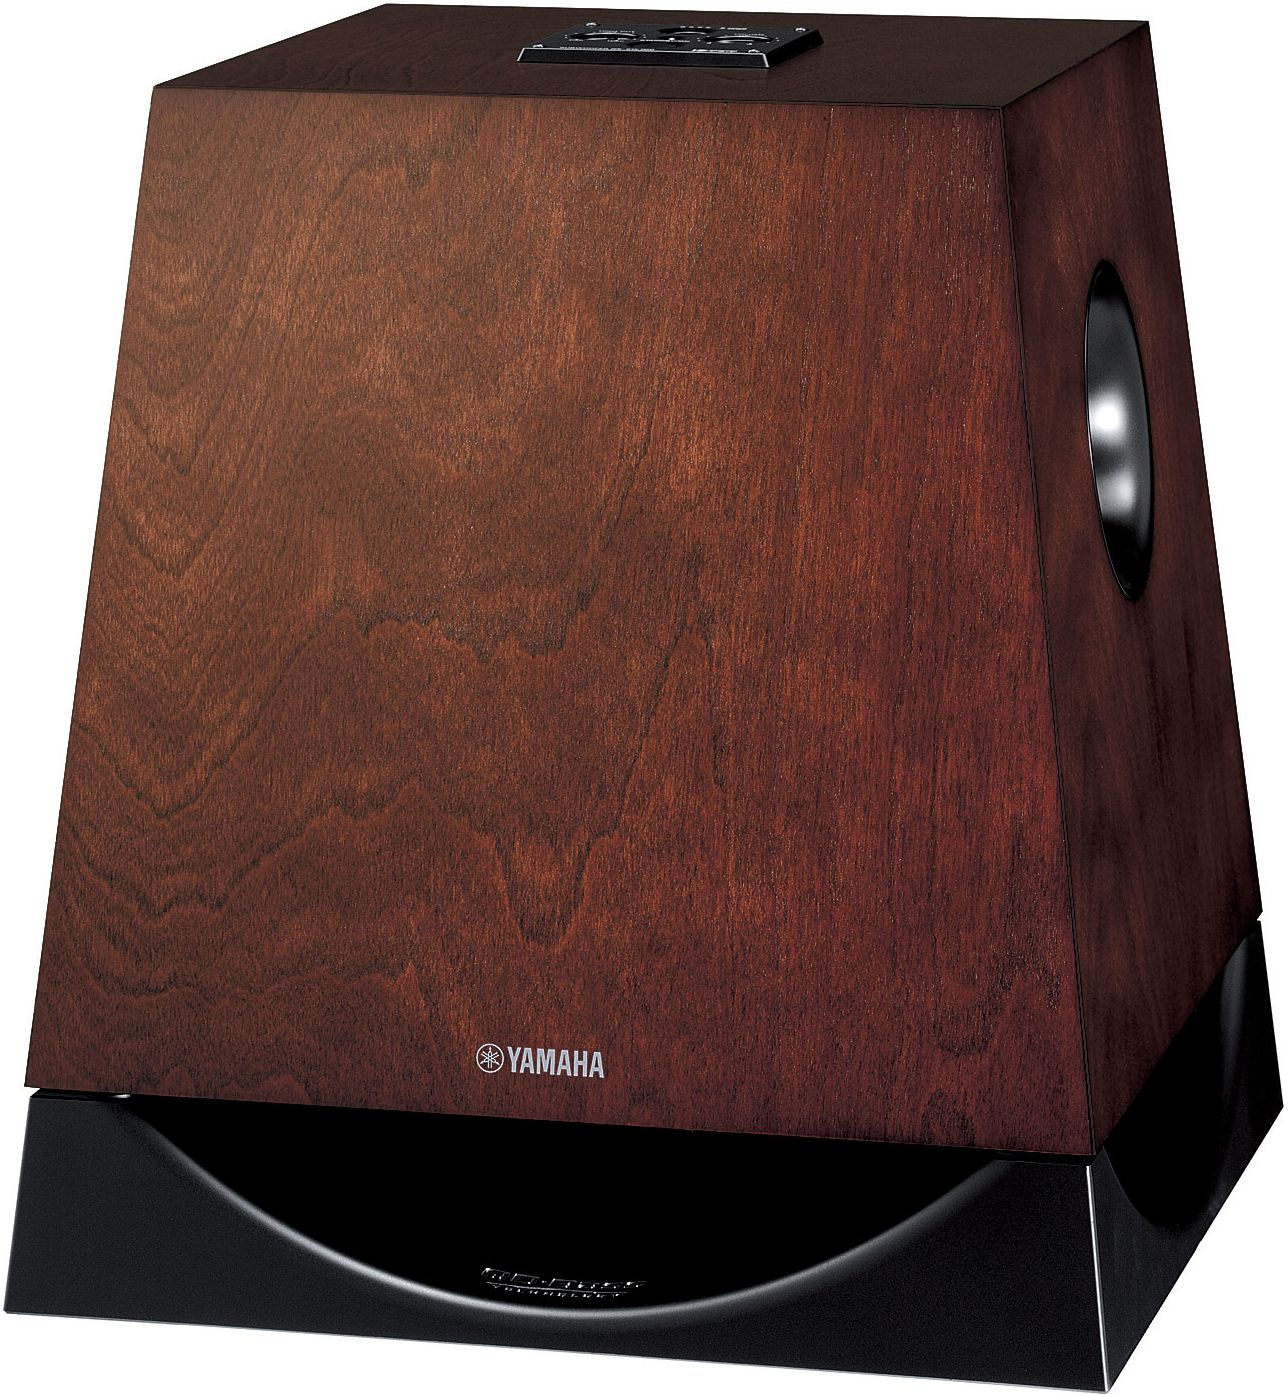 Сабвуфер Yamaha  NS-SW700 Brown